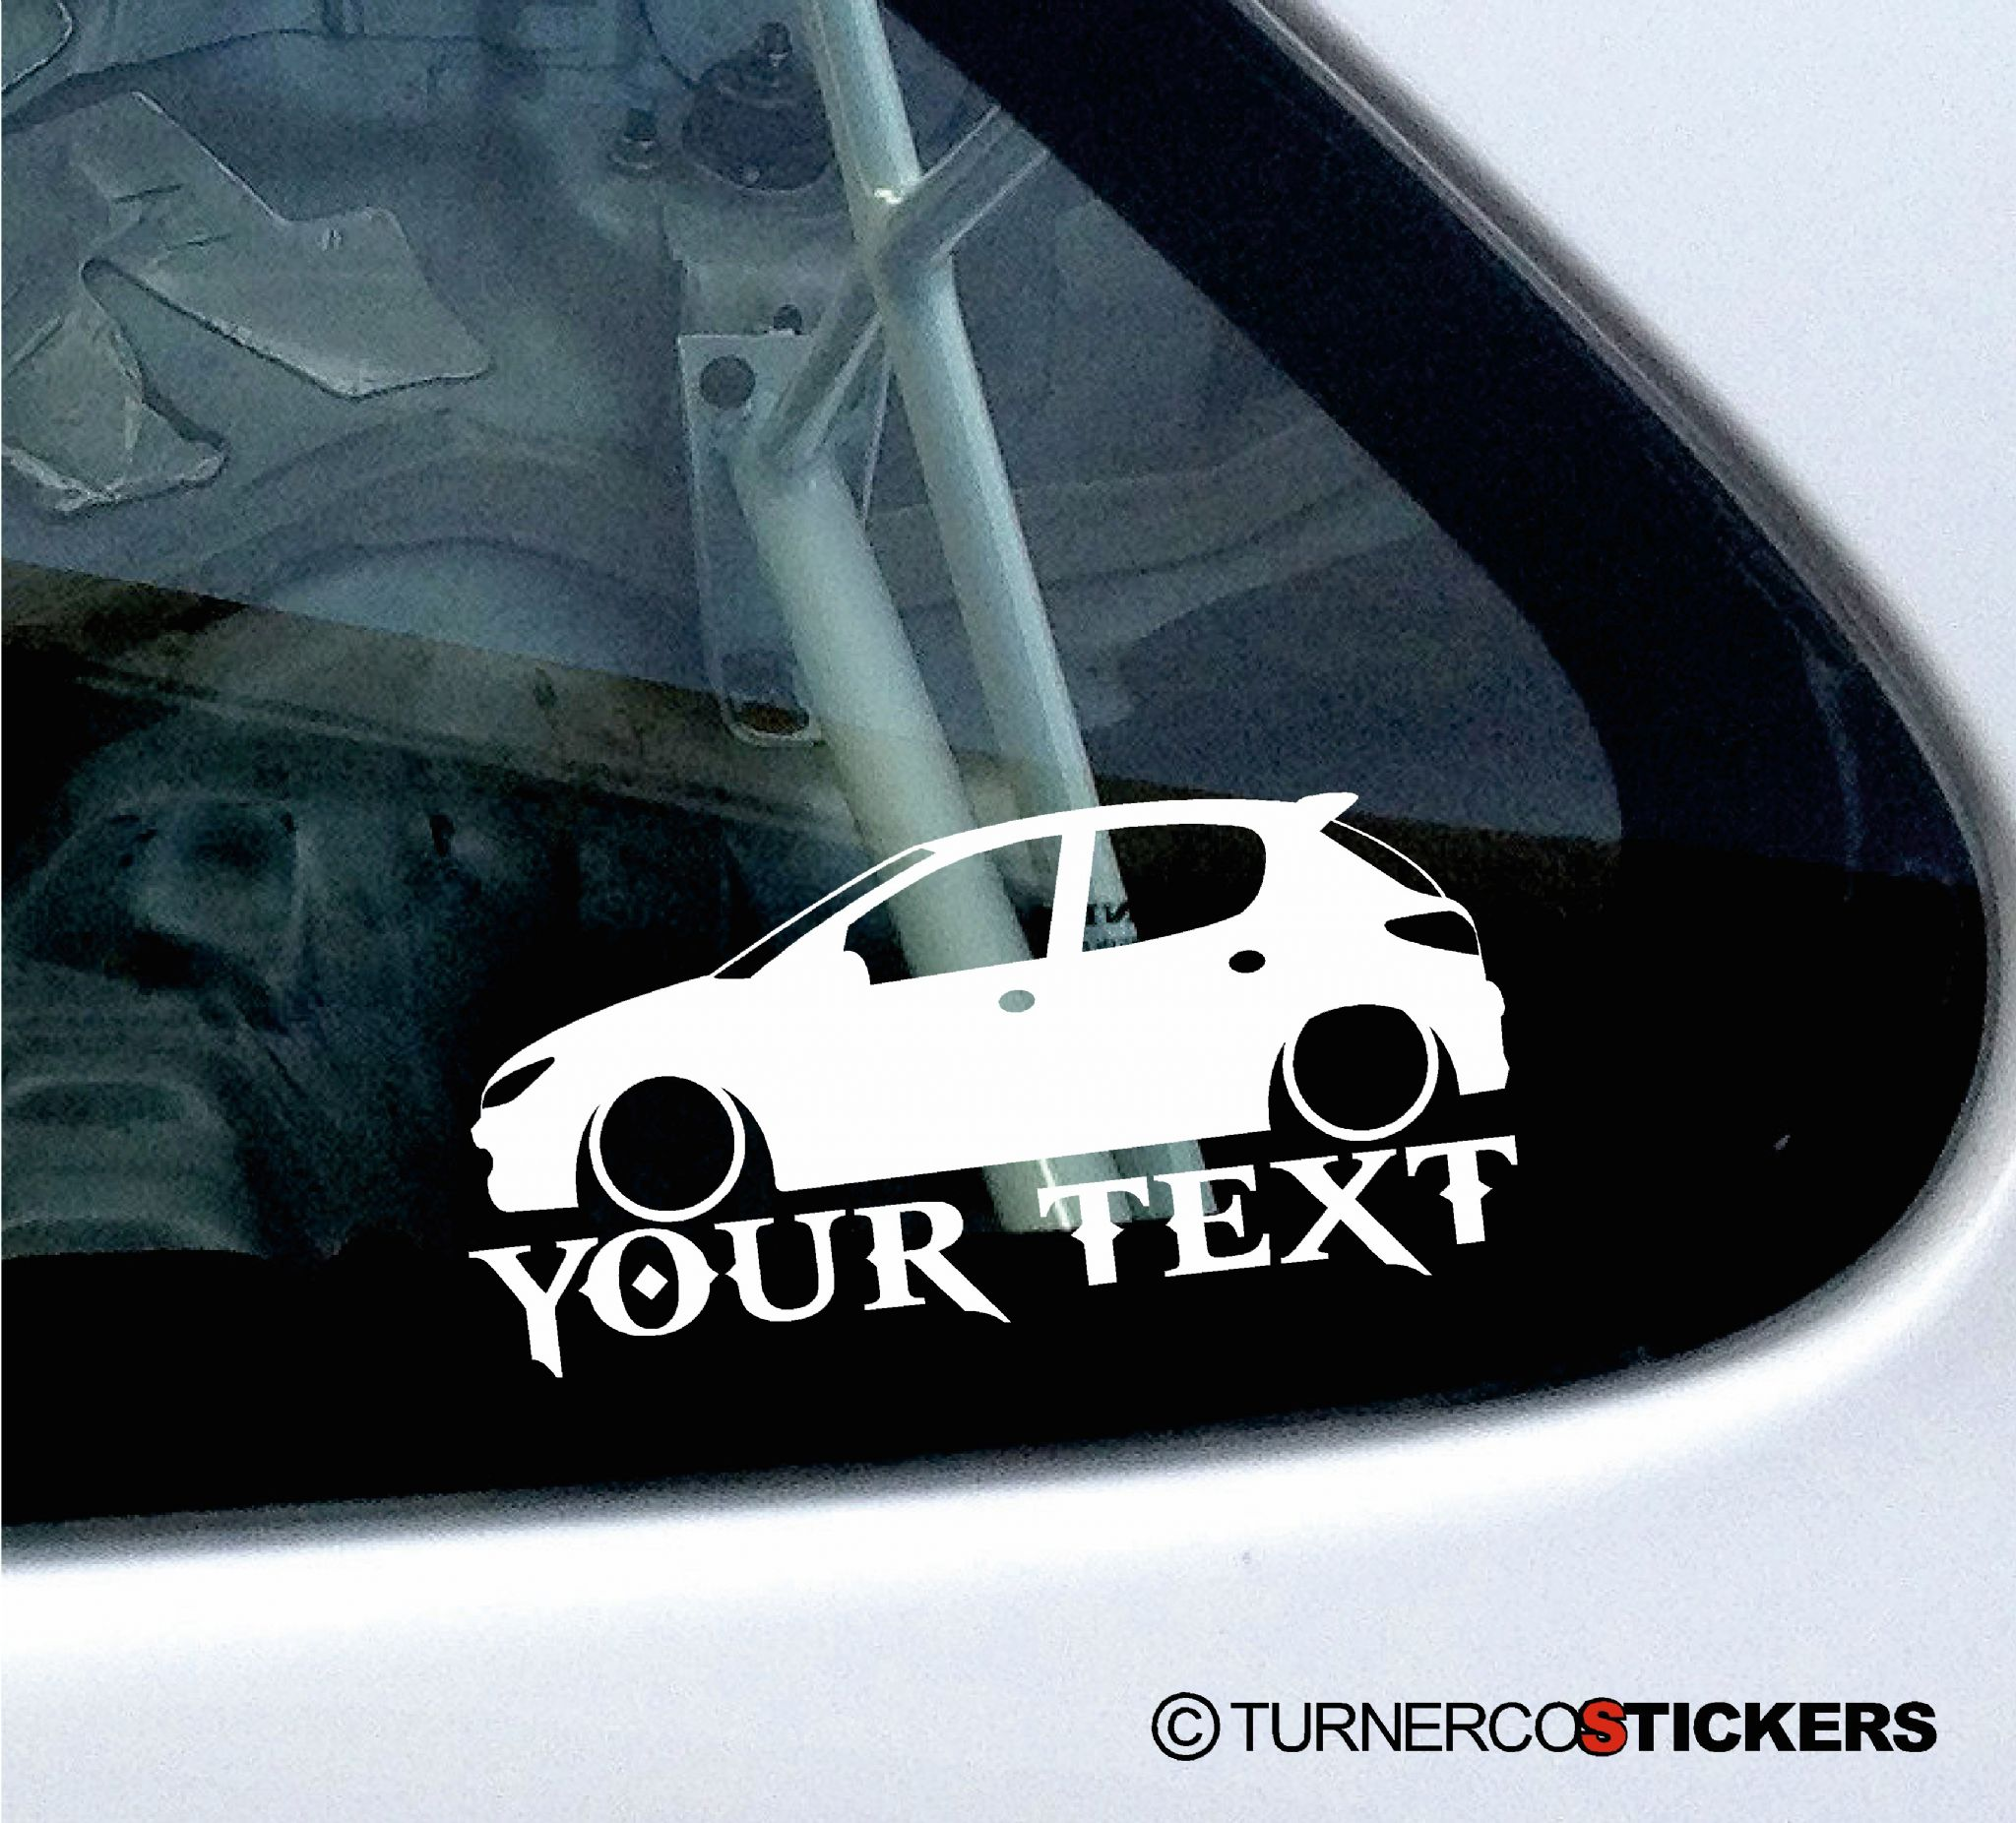 Polo5 Polo Hatchback 5 Door 5th Generation Polo: 2x Custom YOUR TEXT Lowered Car Stickers